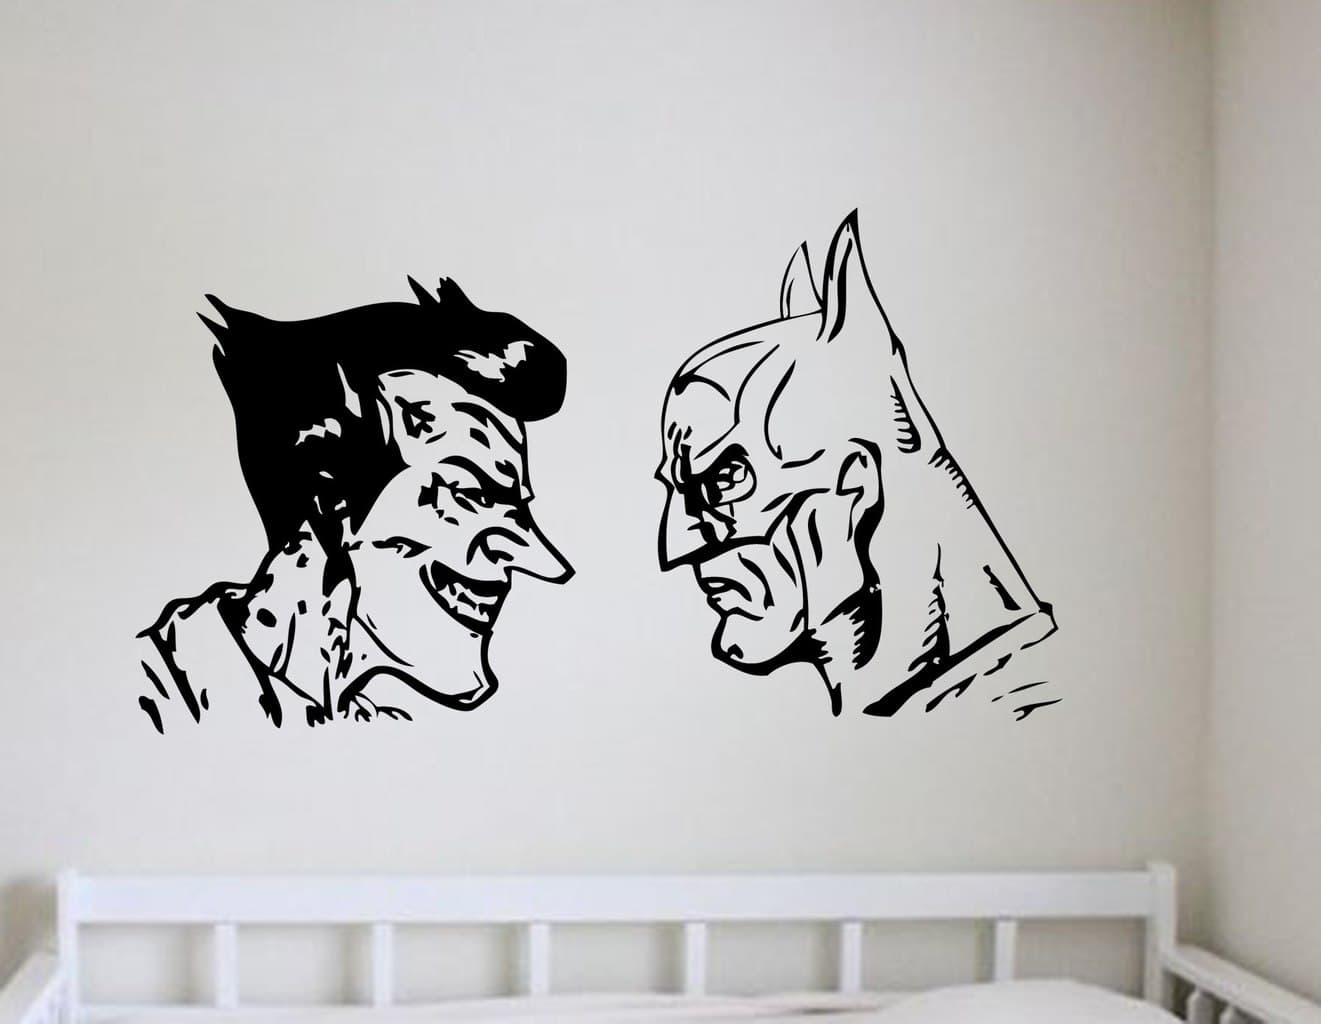 Charmant Batman And Joker Wall Art Decal